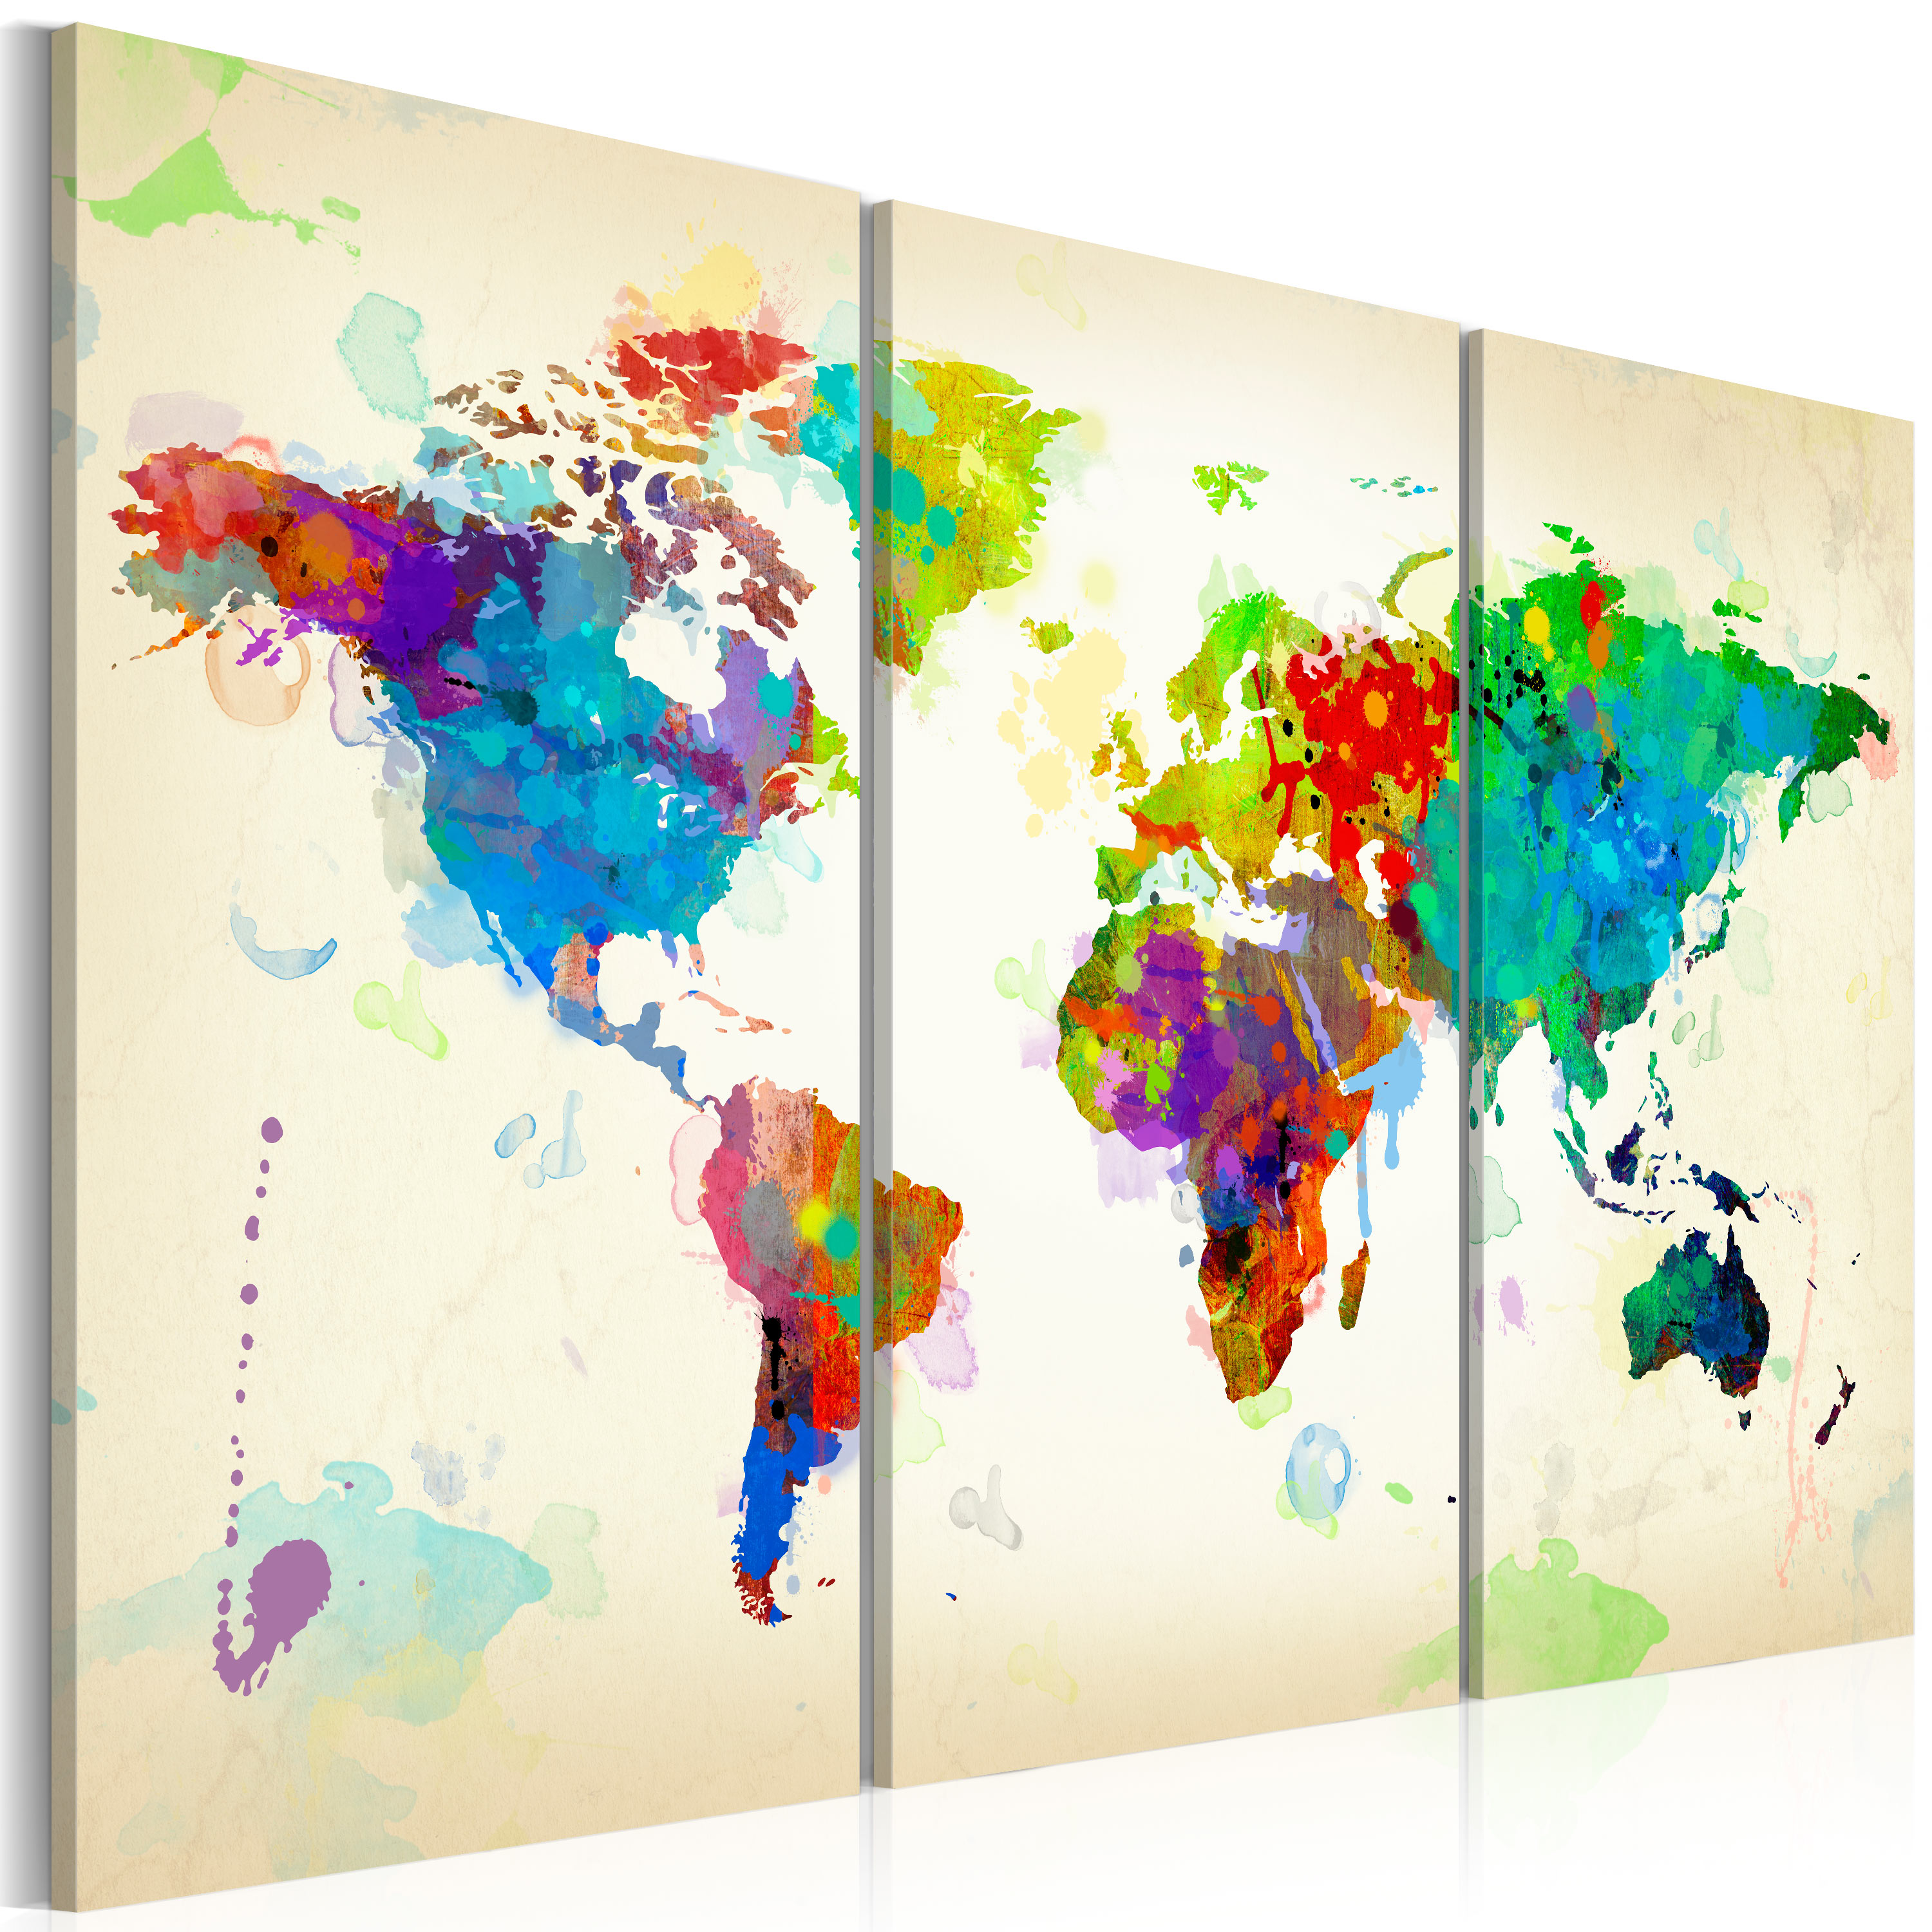 Obraz - All colors of the World - triptych 60x40